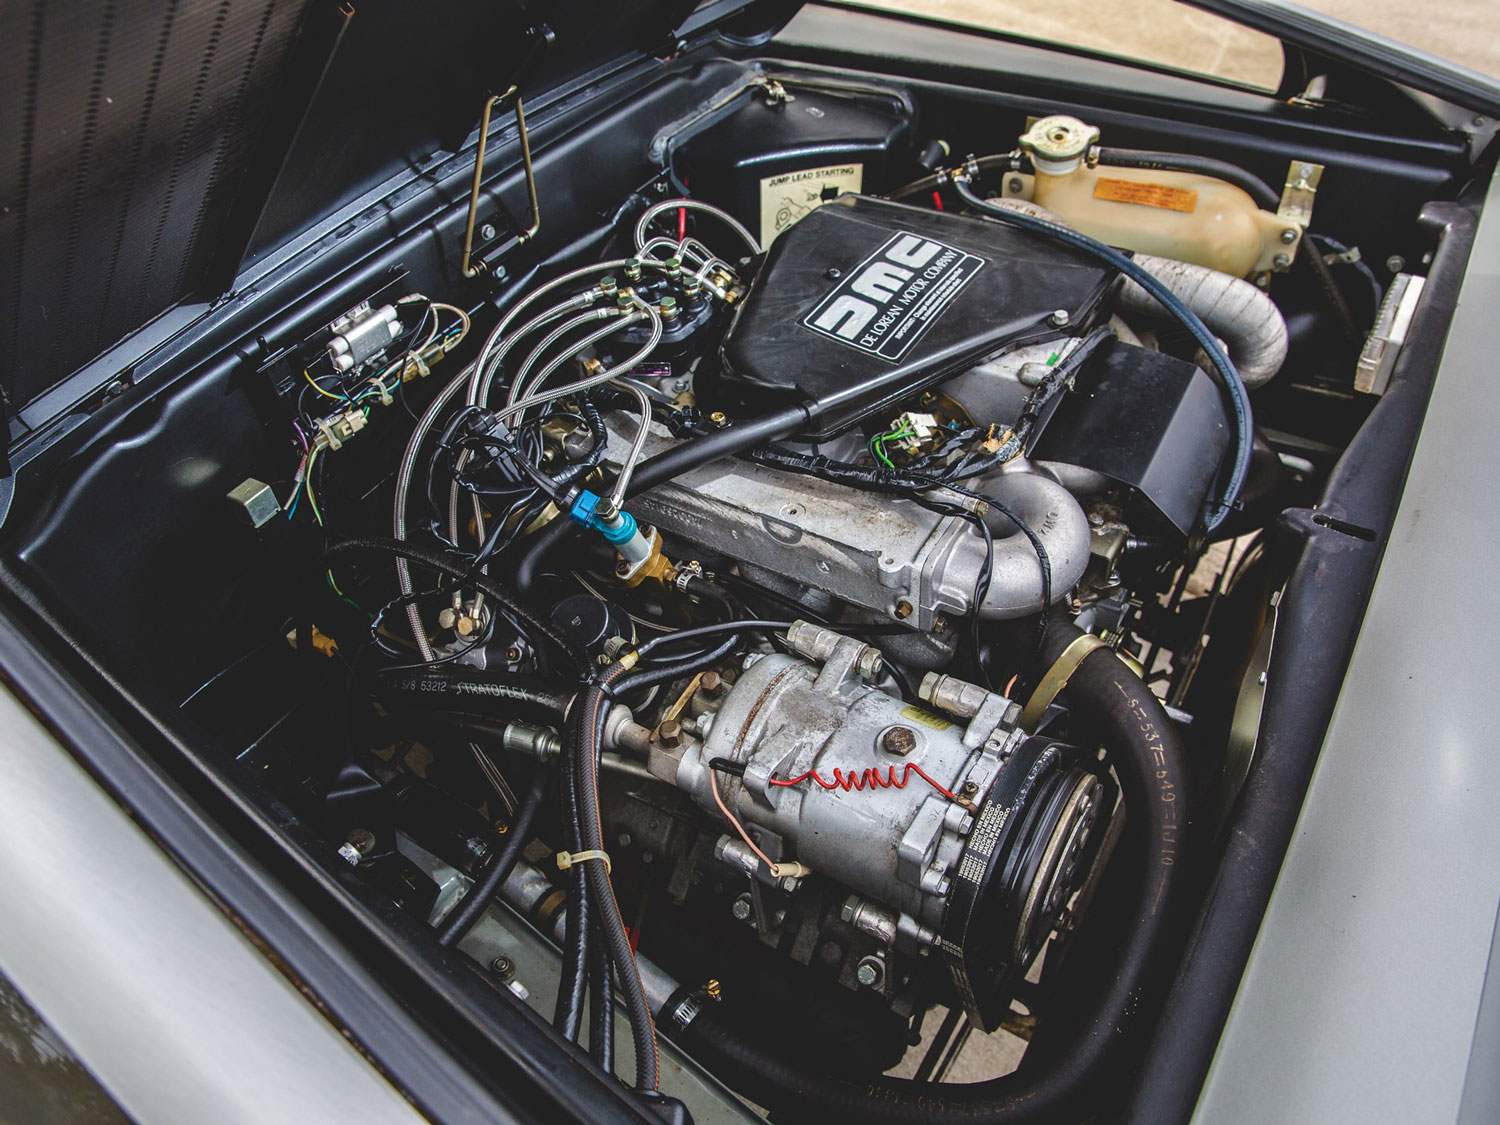 1981 DeLorean DMC-12 Engine